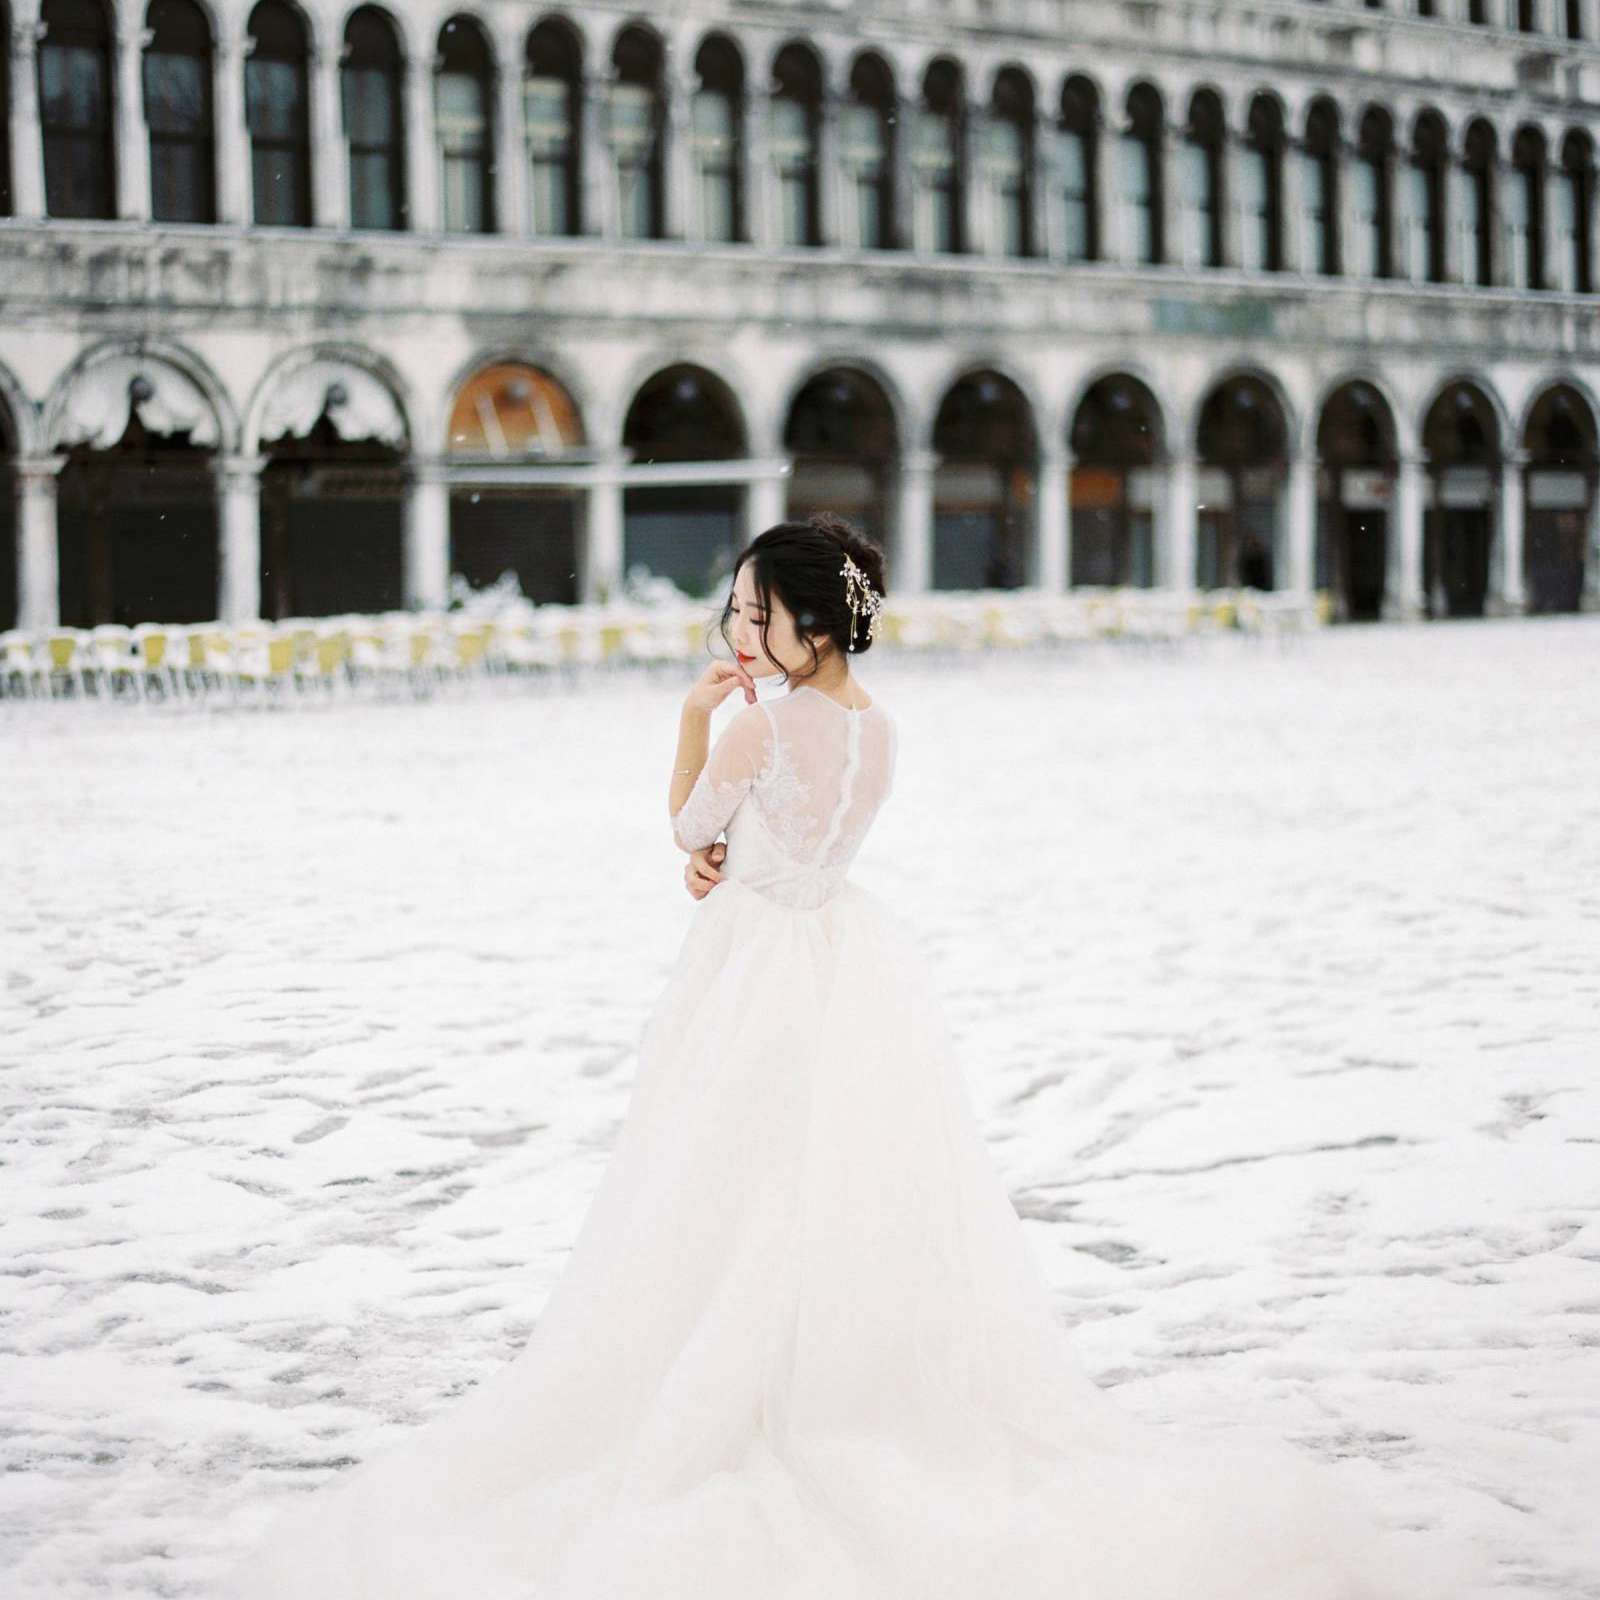 Bride in her wedding gown posing in the snow outside